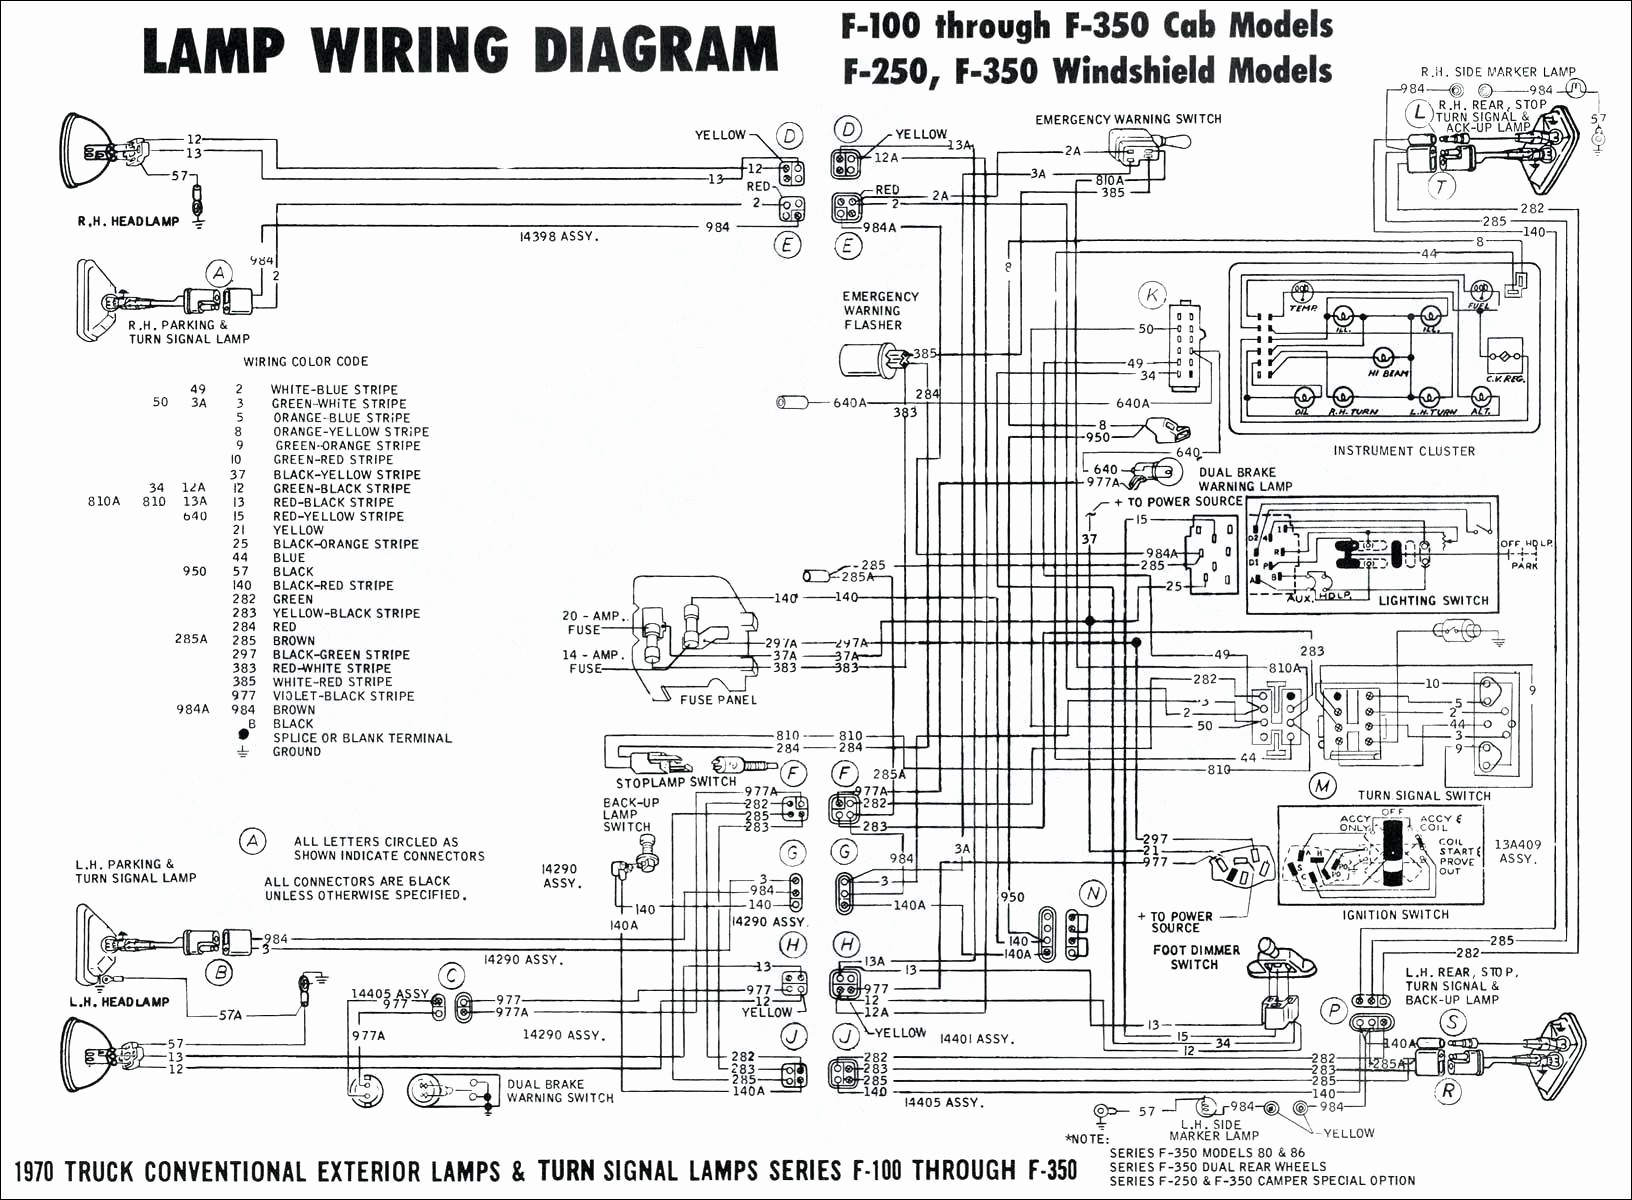 Electric Water Heater Wiring Diagram Wiring Diagram Immersion Heater thermostat Save Electric Water Of Electric Water Heater Wiring Diagram